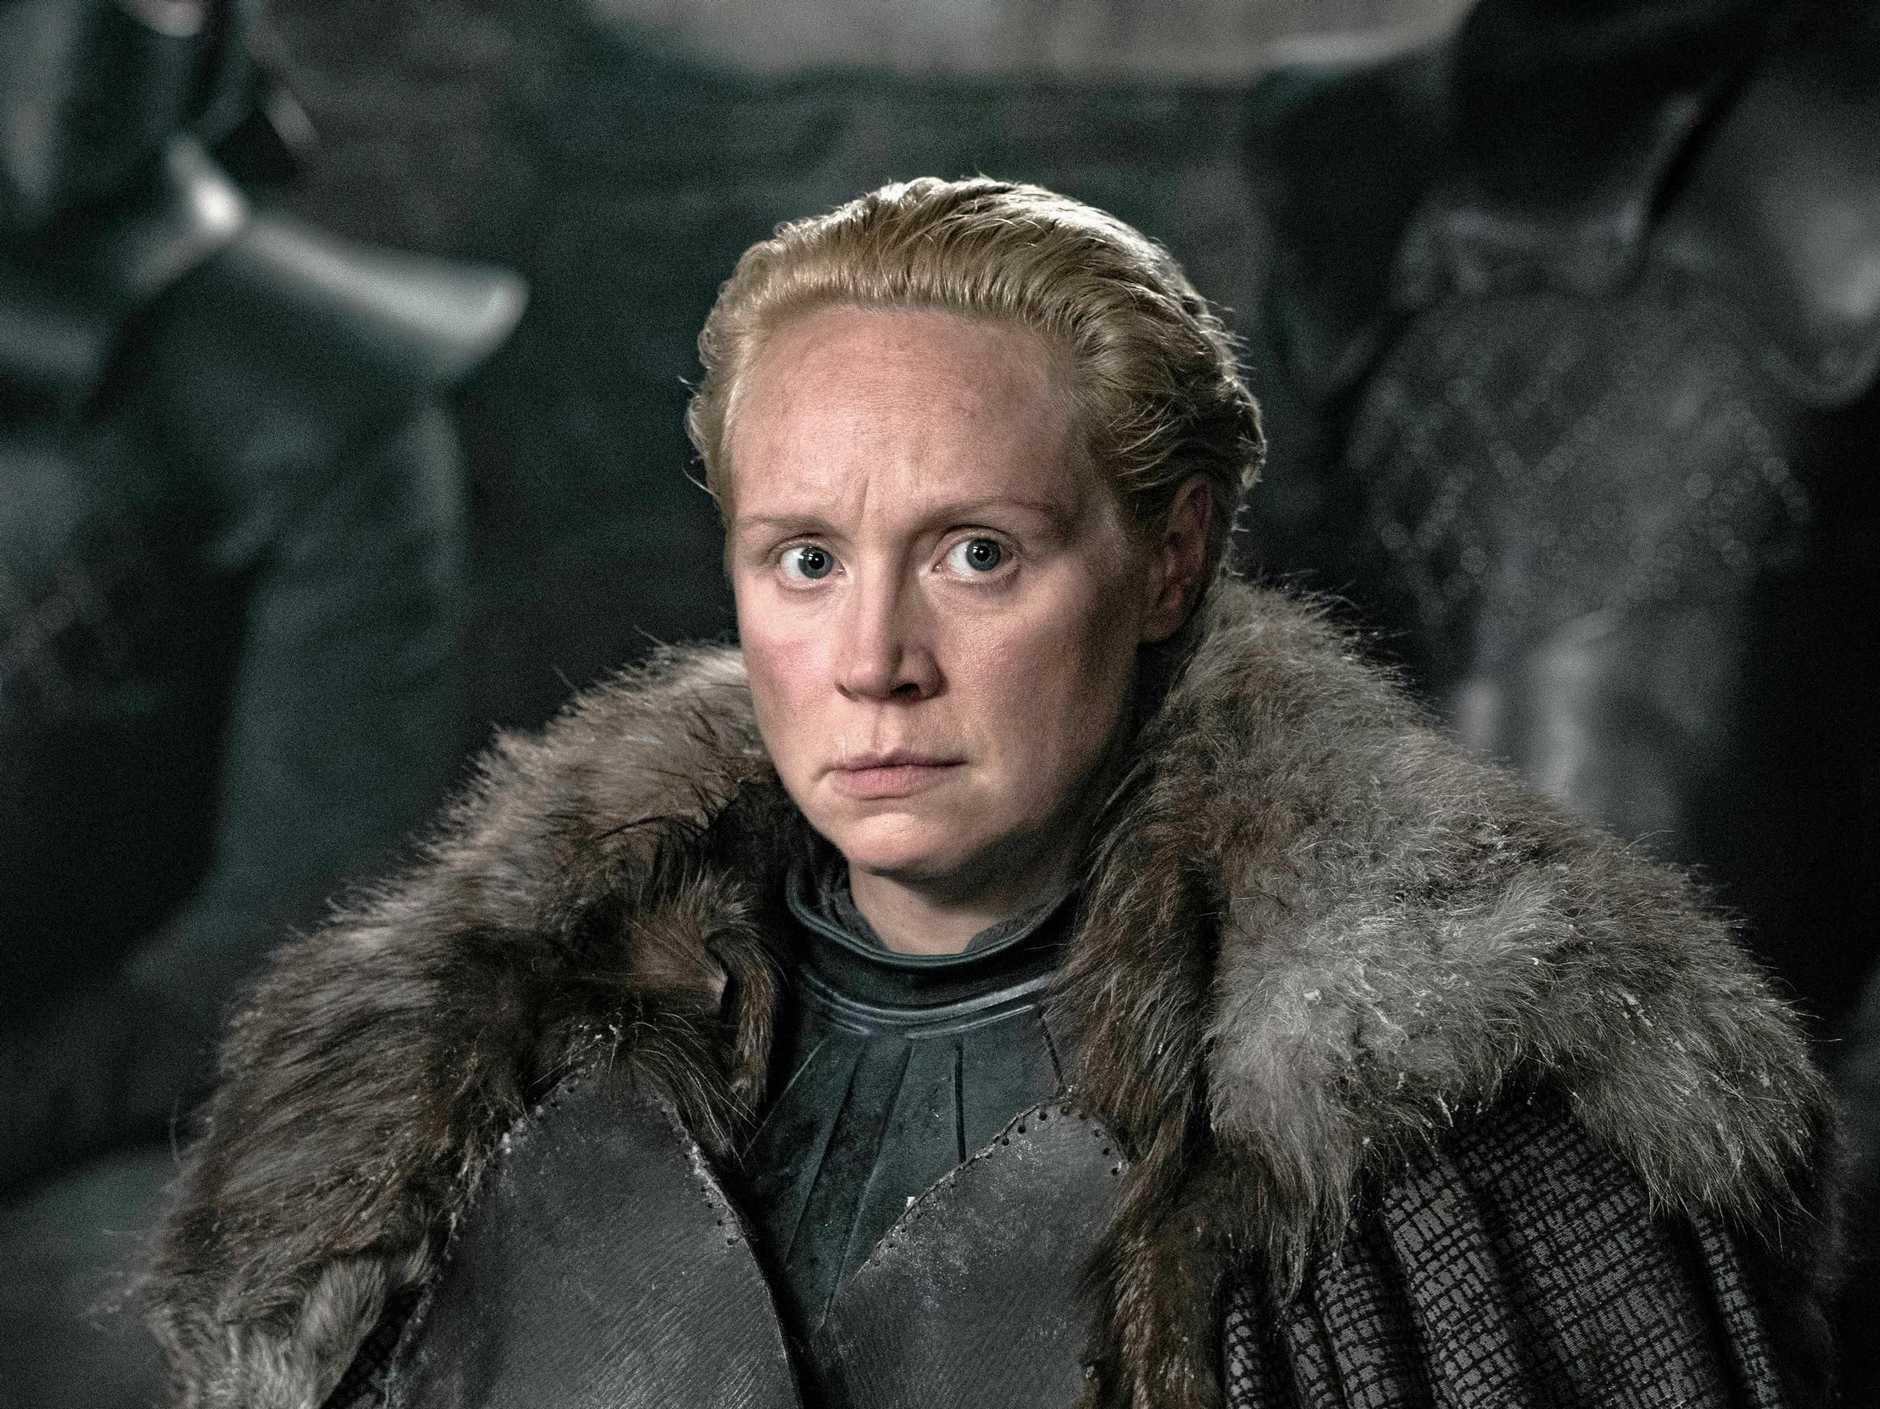 Gwendoline Christie as Brienne of Tarth.